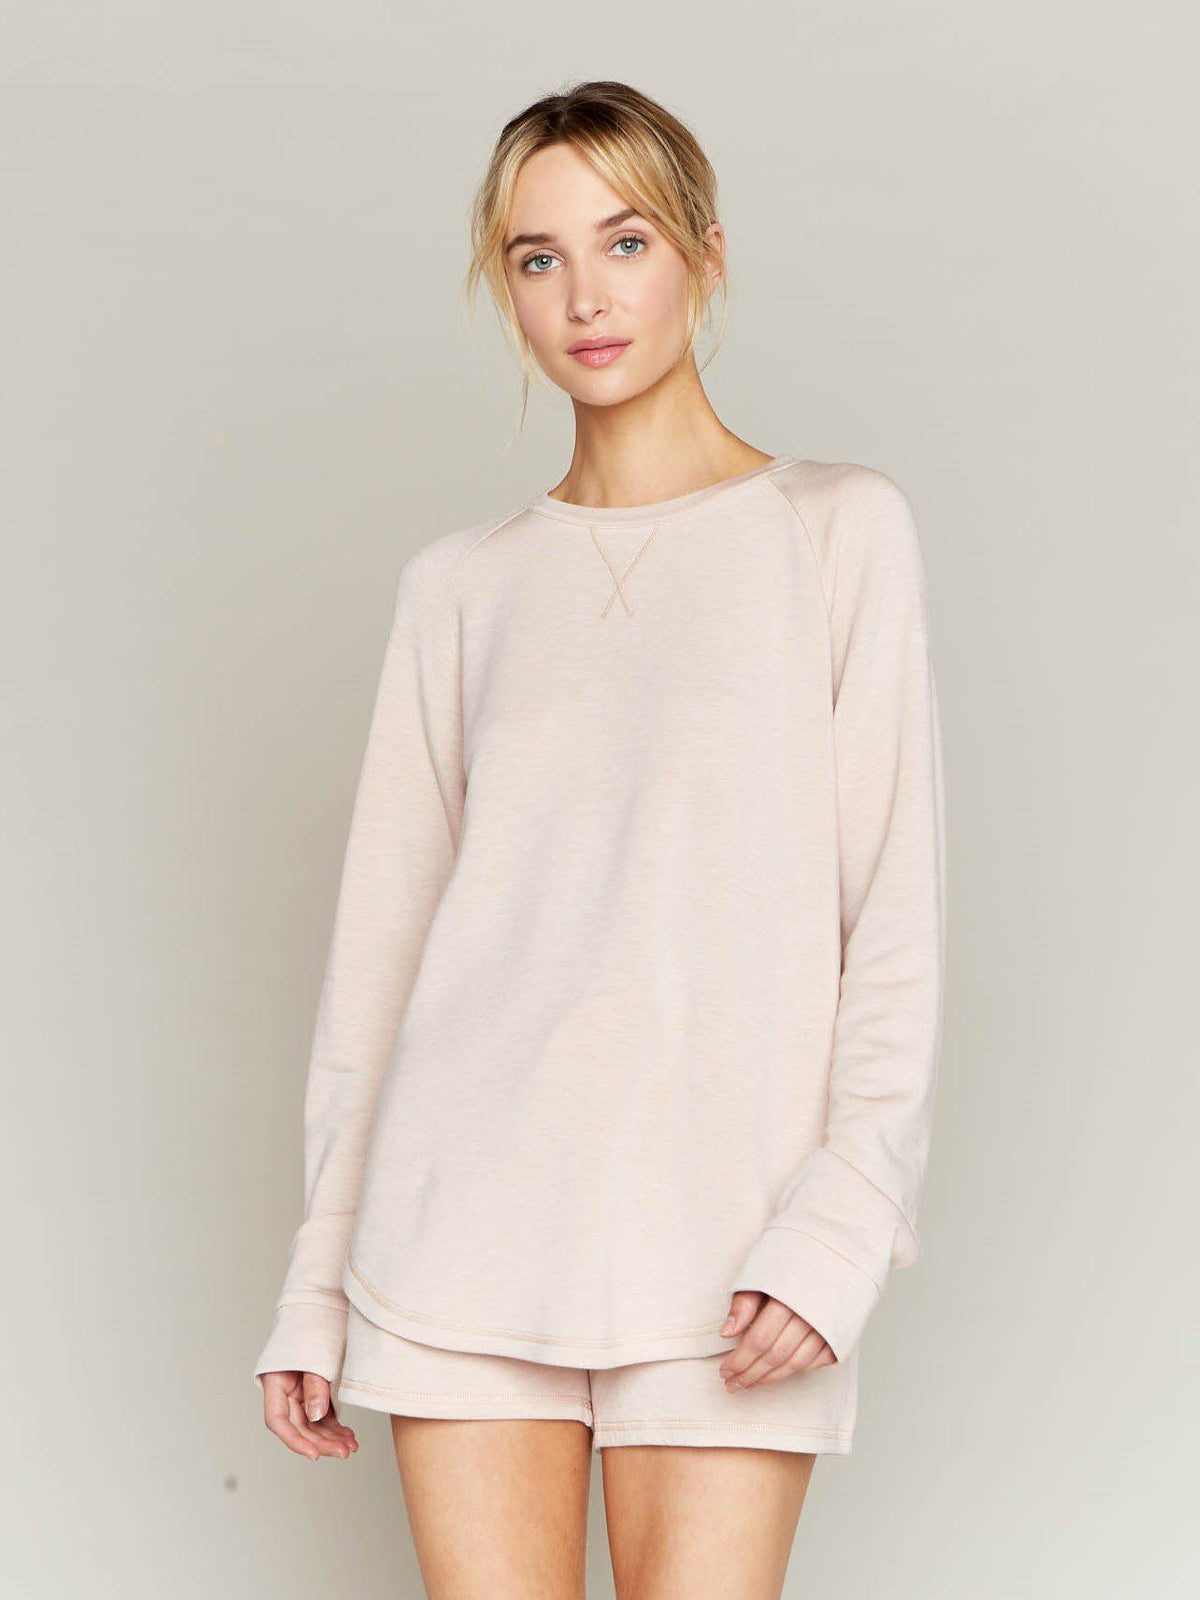 Feel at Home Sweatshirt Unclassified Thread&Supply Dusty Pink S